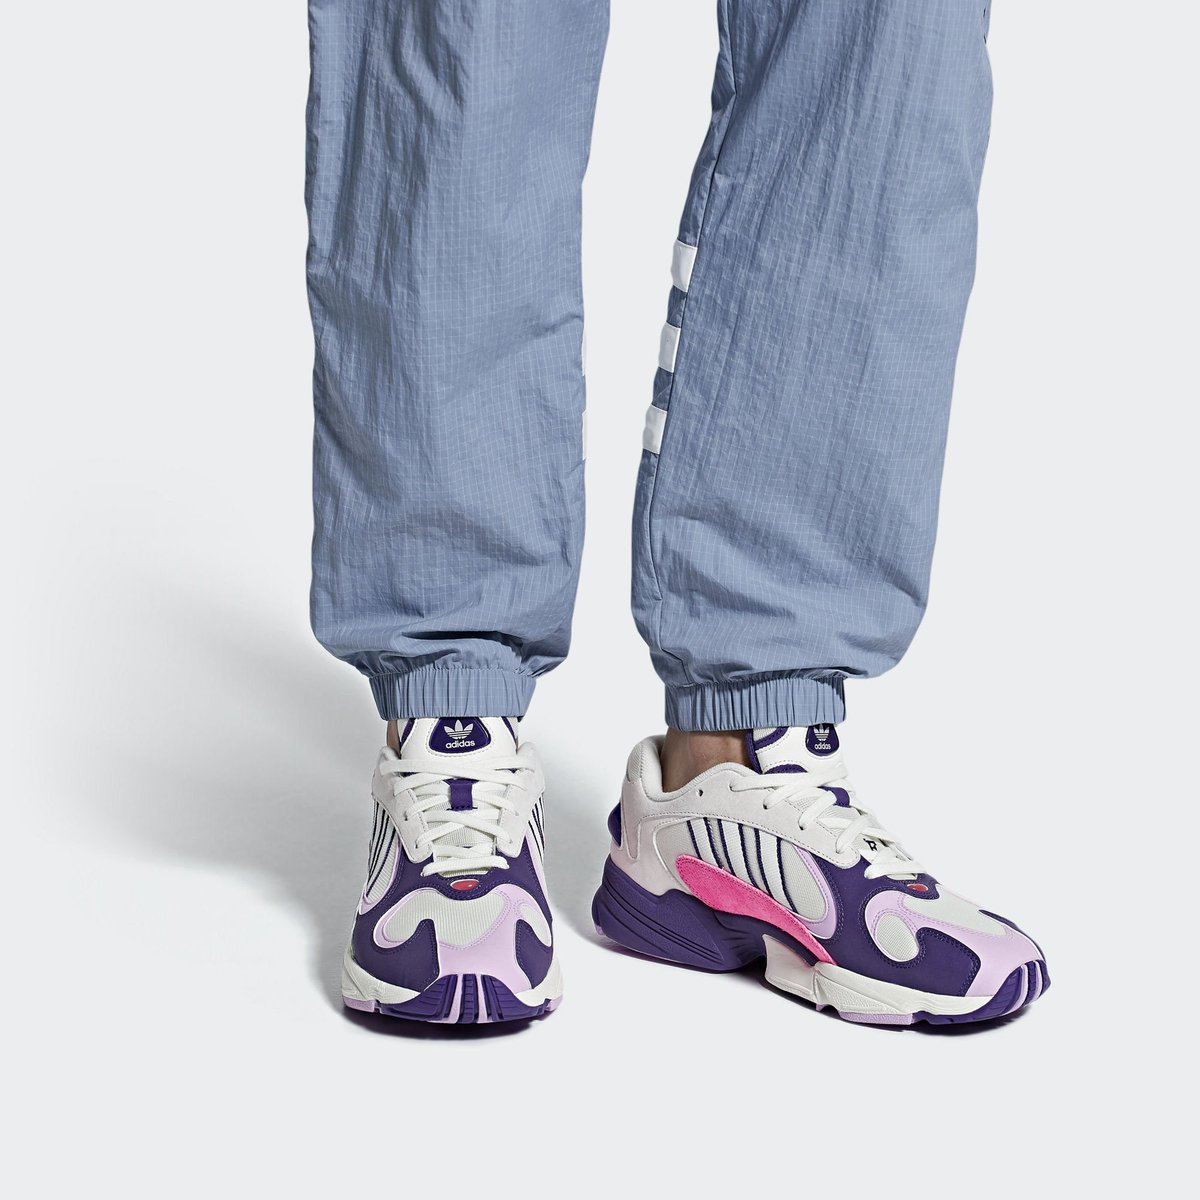 info for 8f6d2 38dd2 Official adidas images of the Dragon Ball Z x adidas Yung 1